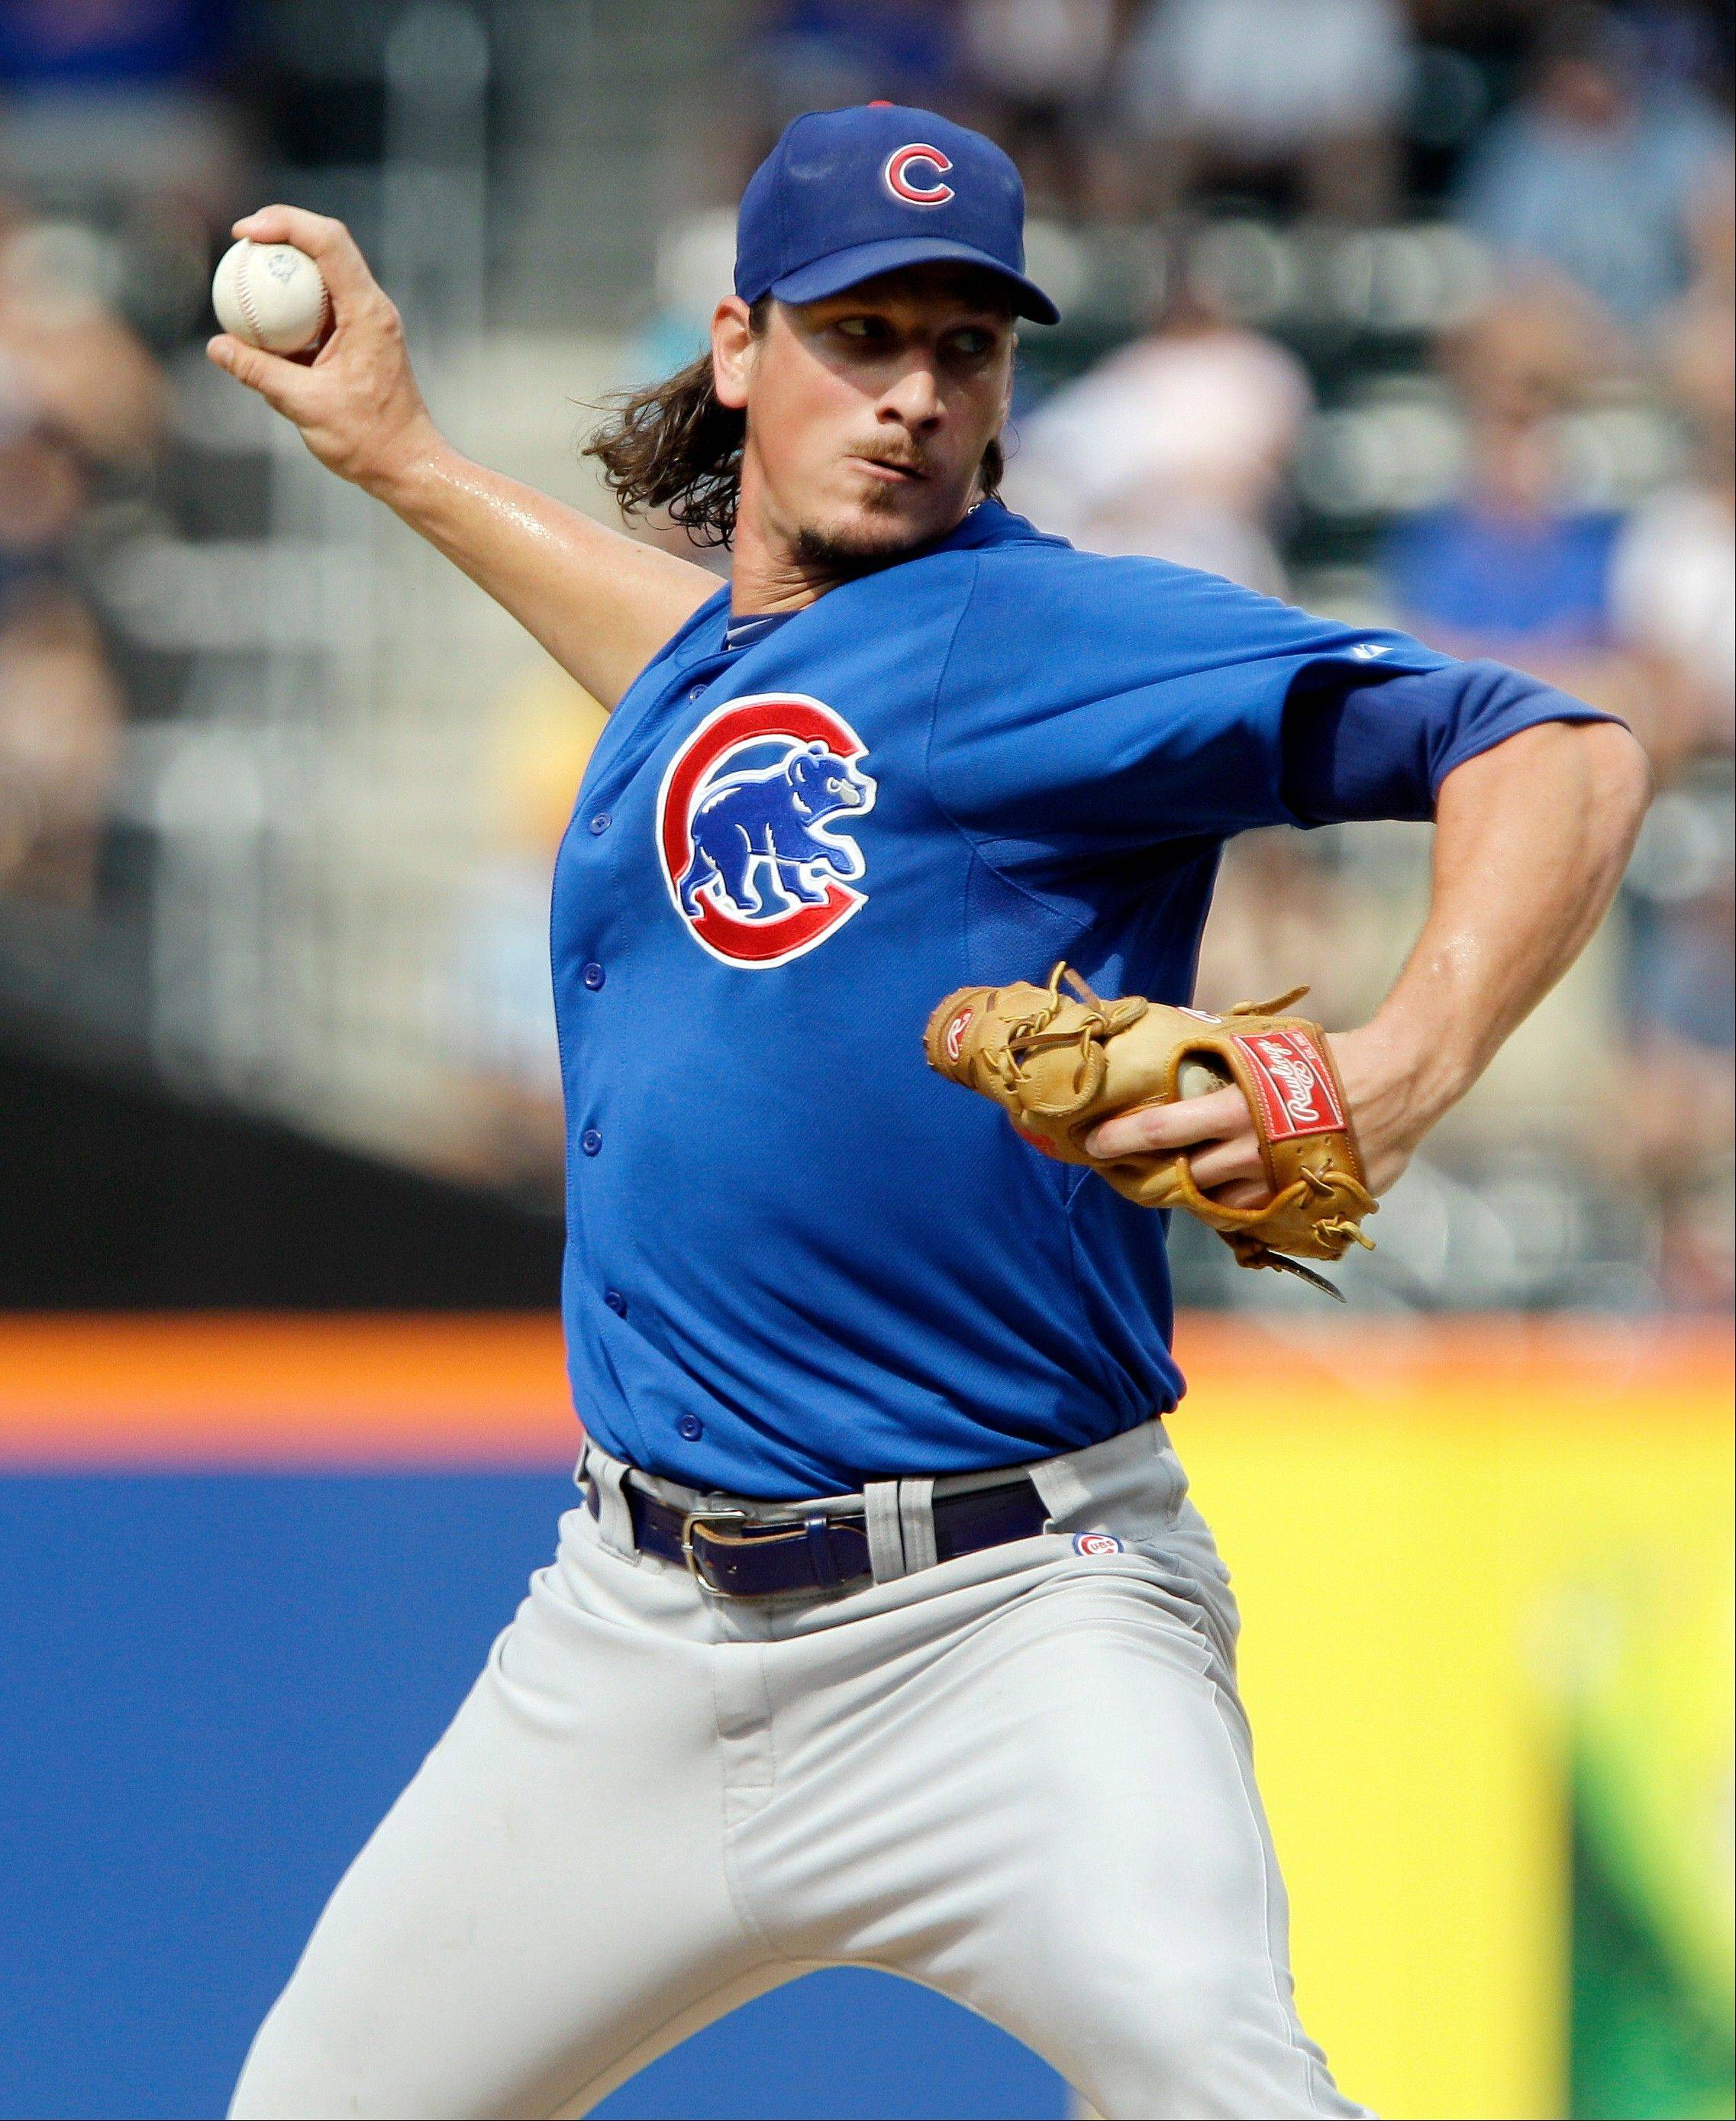 Jeff Samardzija will make his first start since July 7 when he faces the Miami Marlins on Wednesday night at Wrigley Field.